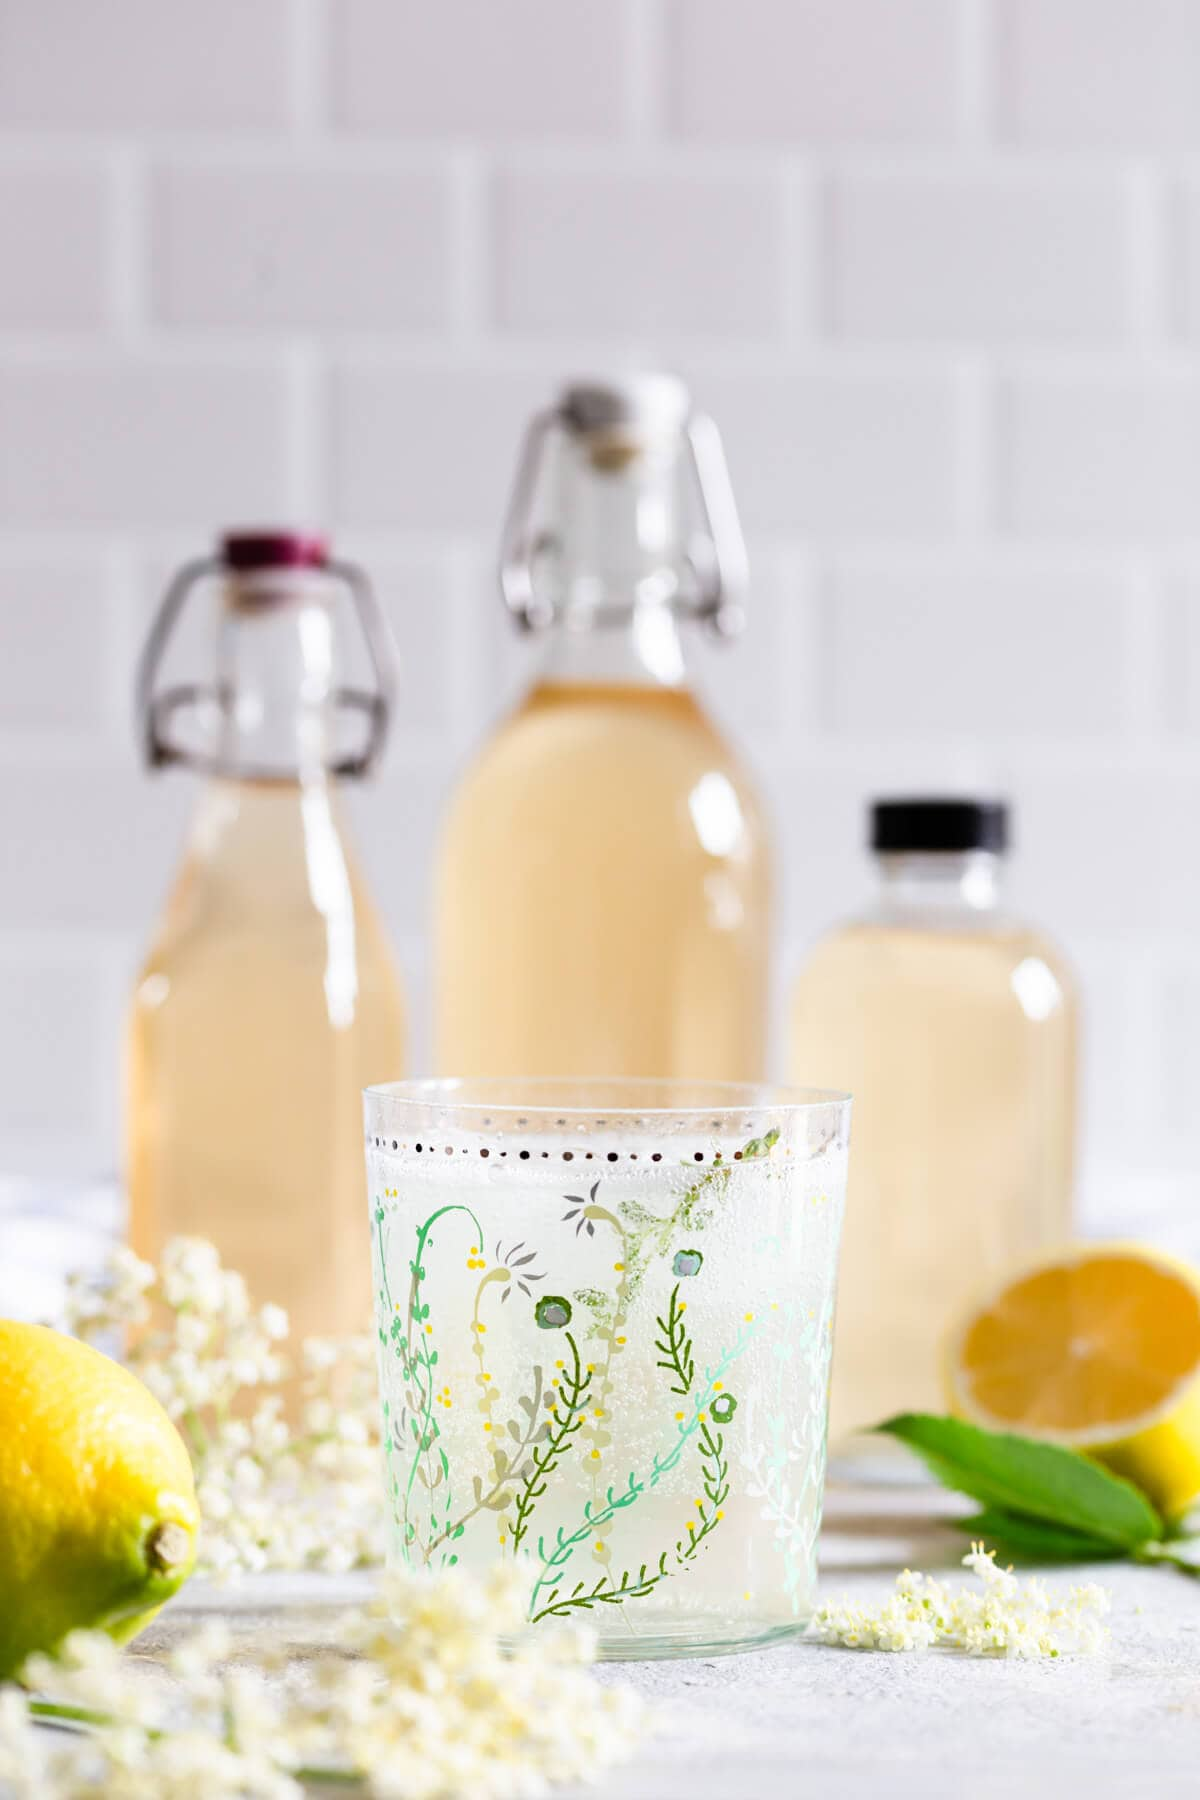 straight ahead view of a glass with fizzy elderflower cordial and cordial bottles at the back